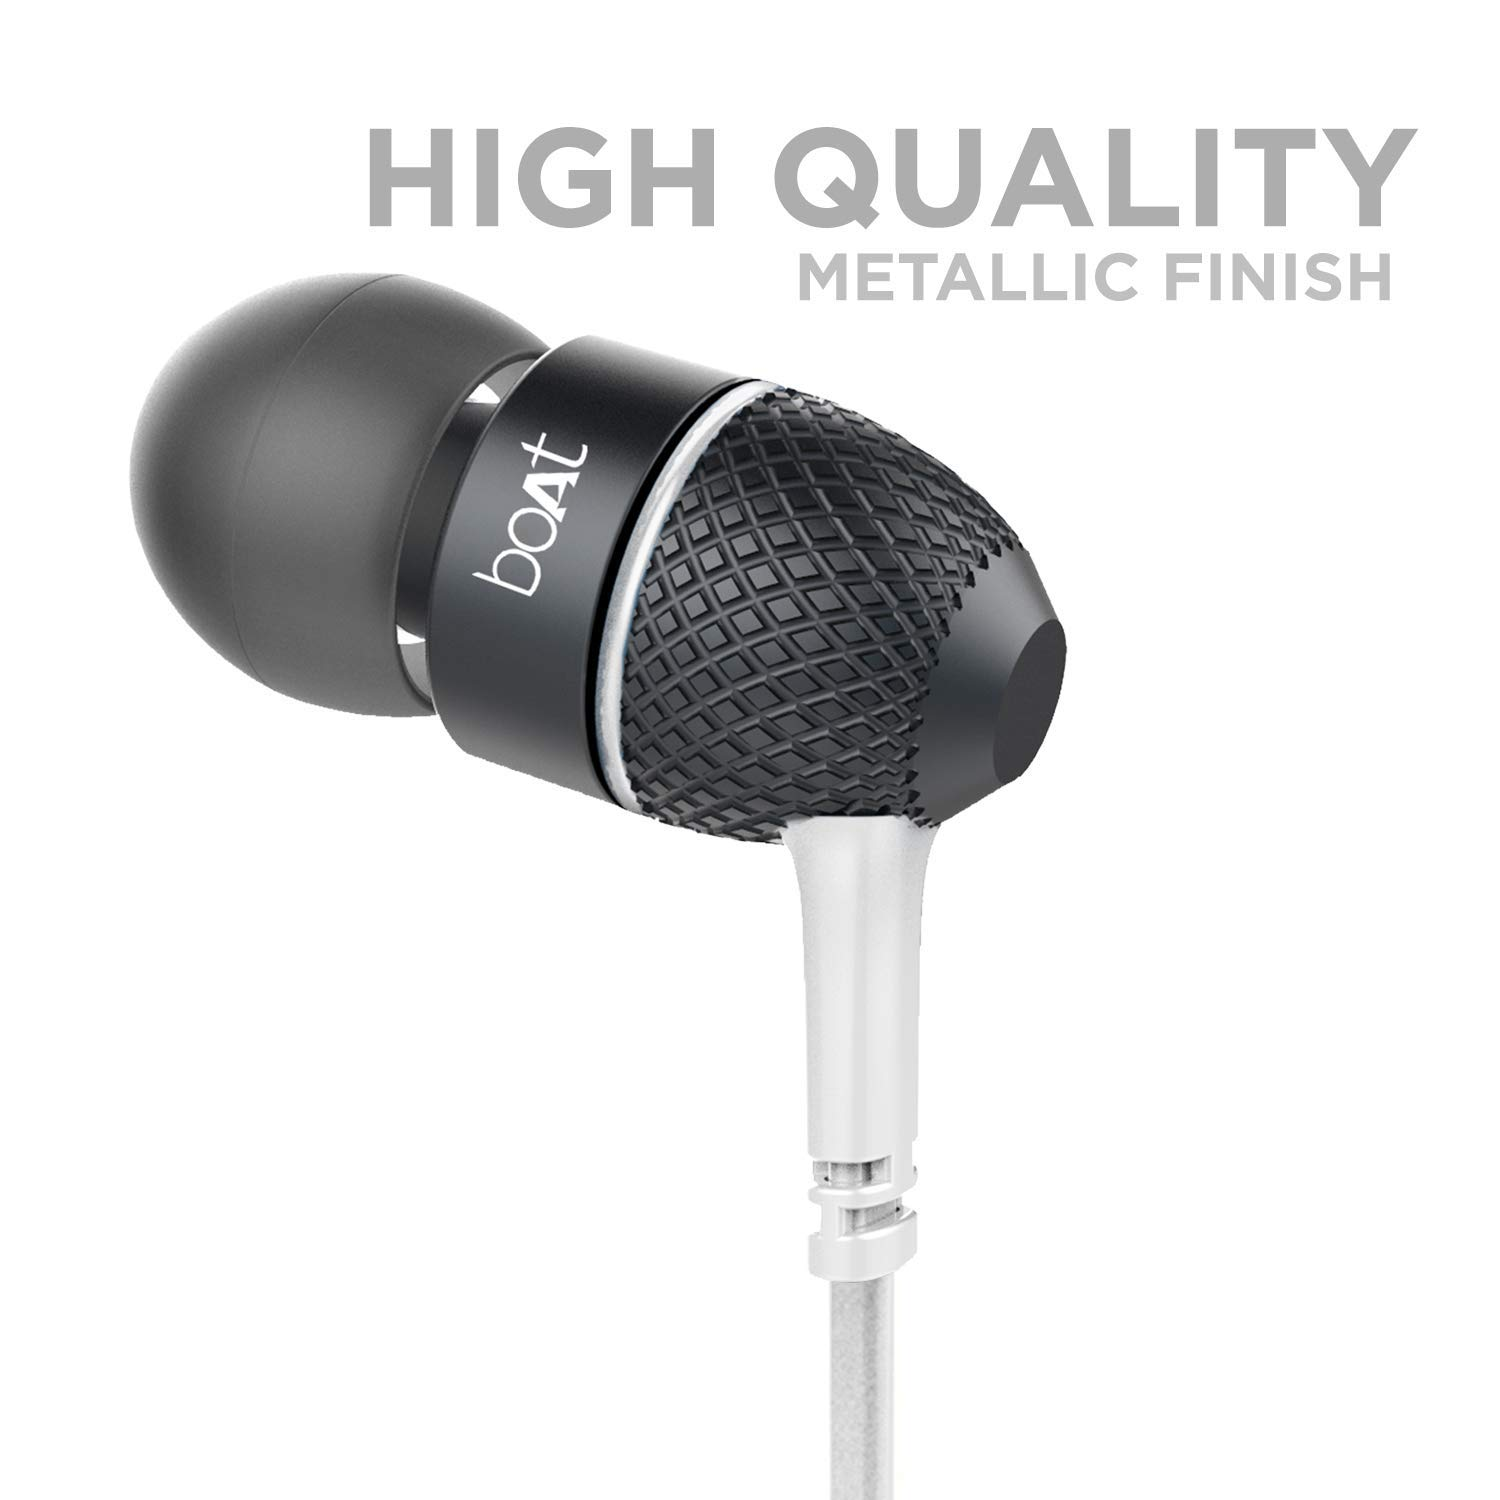 boAt BassHeads 225 in-Ear Wired Earphones with Super Extra Bass, Metallic Finish, Tangle-Free Cable and Gold Plated Angled Jack (Frosty White)